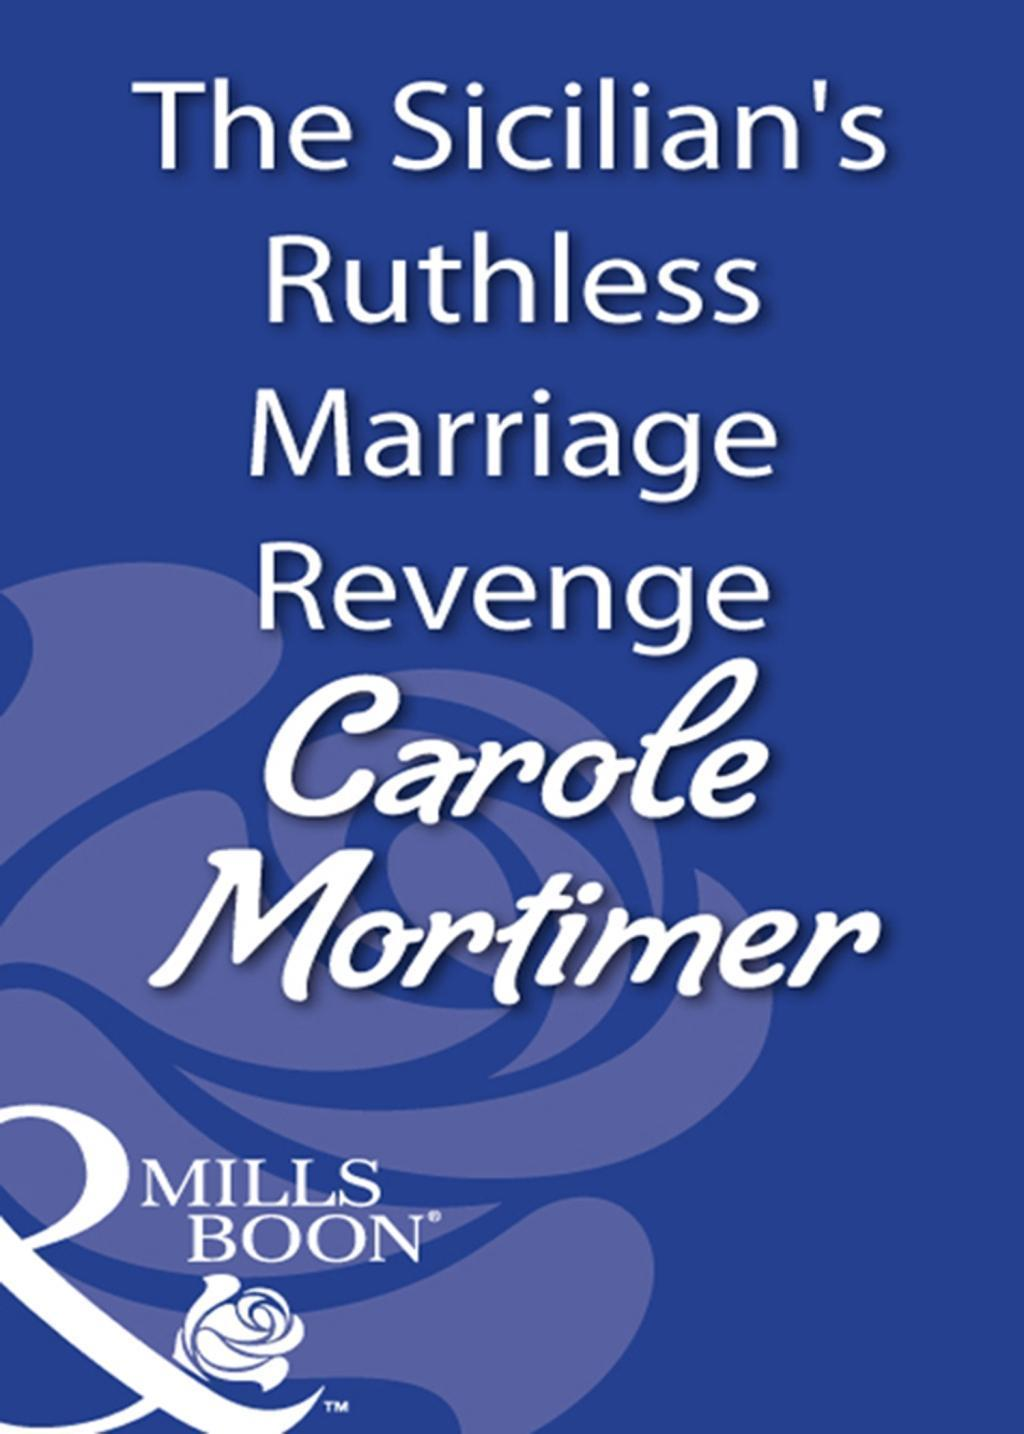 The Sicilian's Ruthless Marriage Revenge (Mills & Boon Modern)